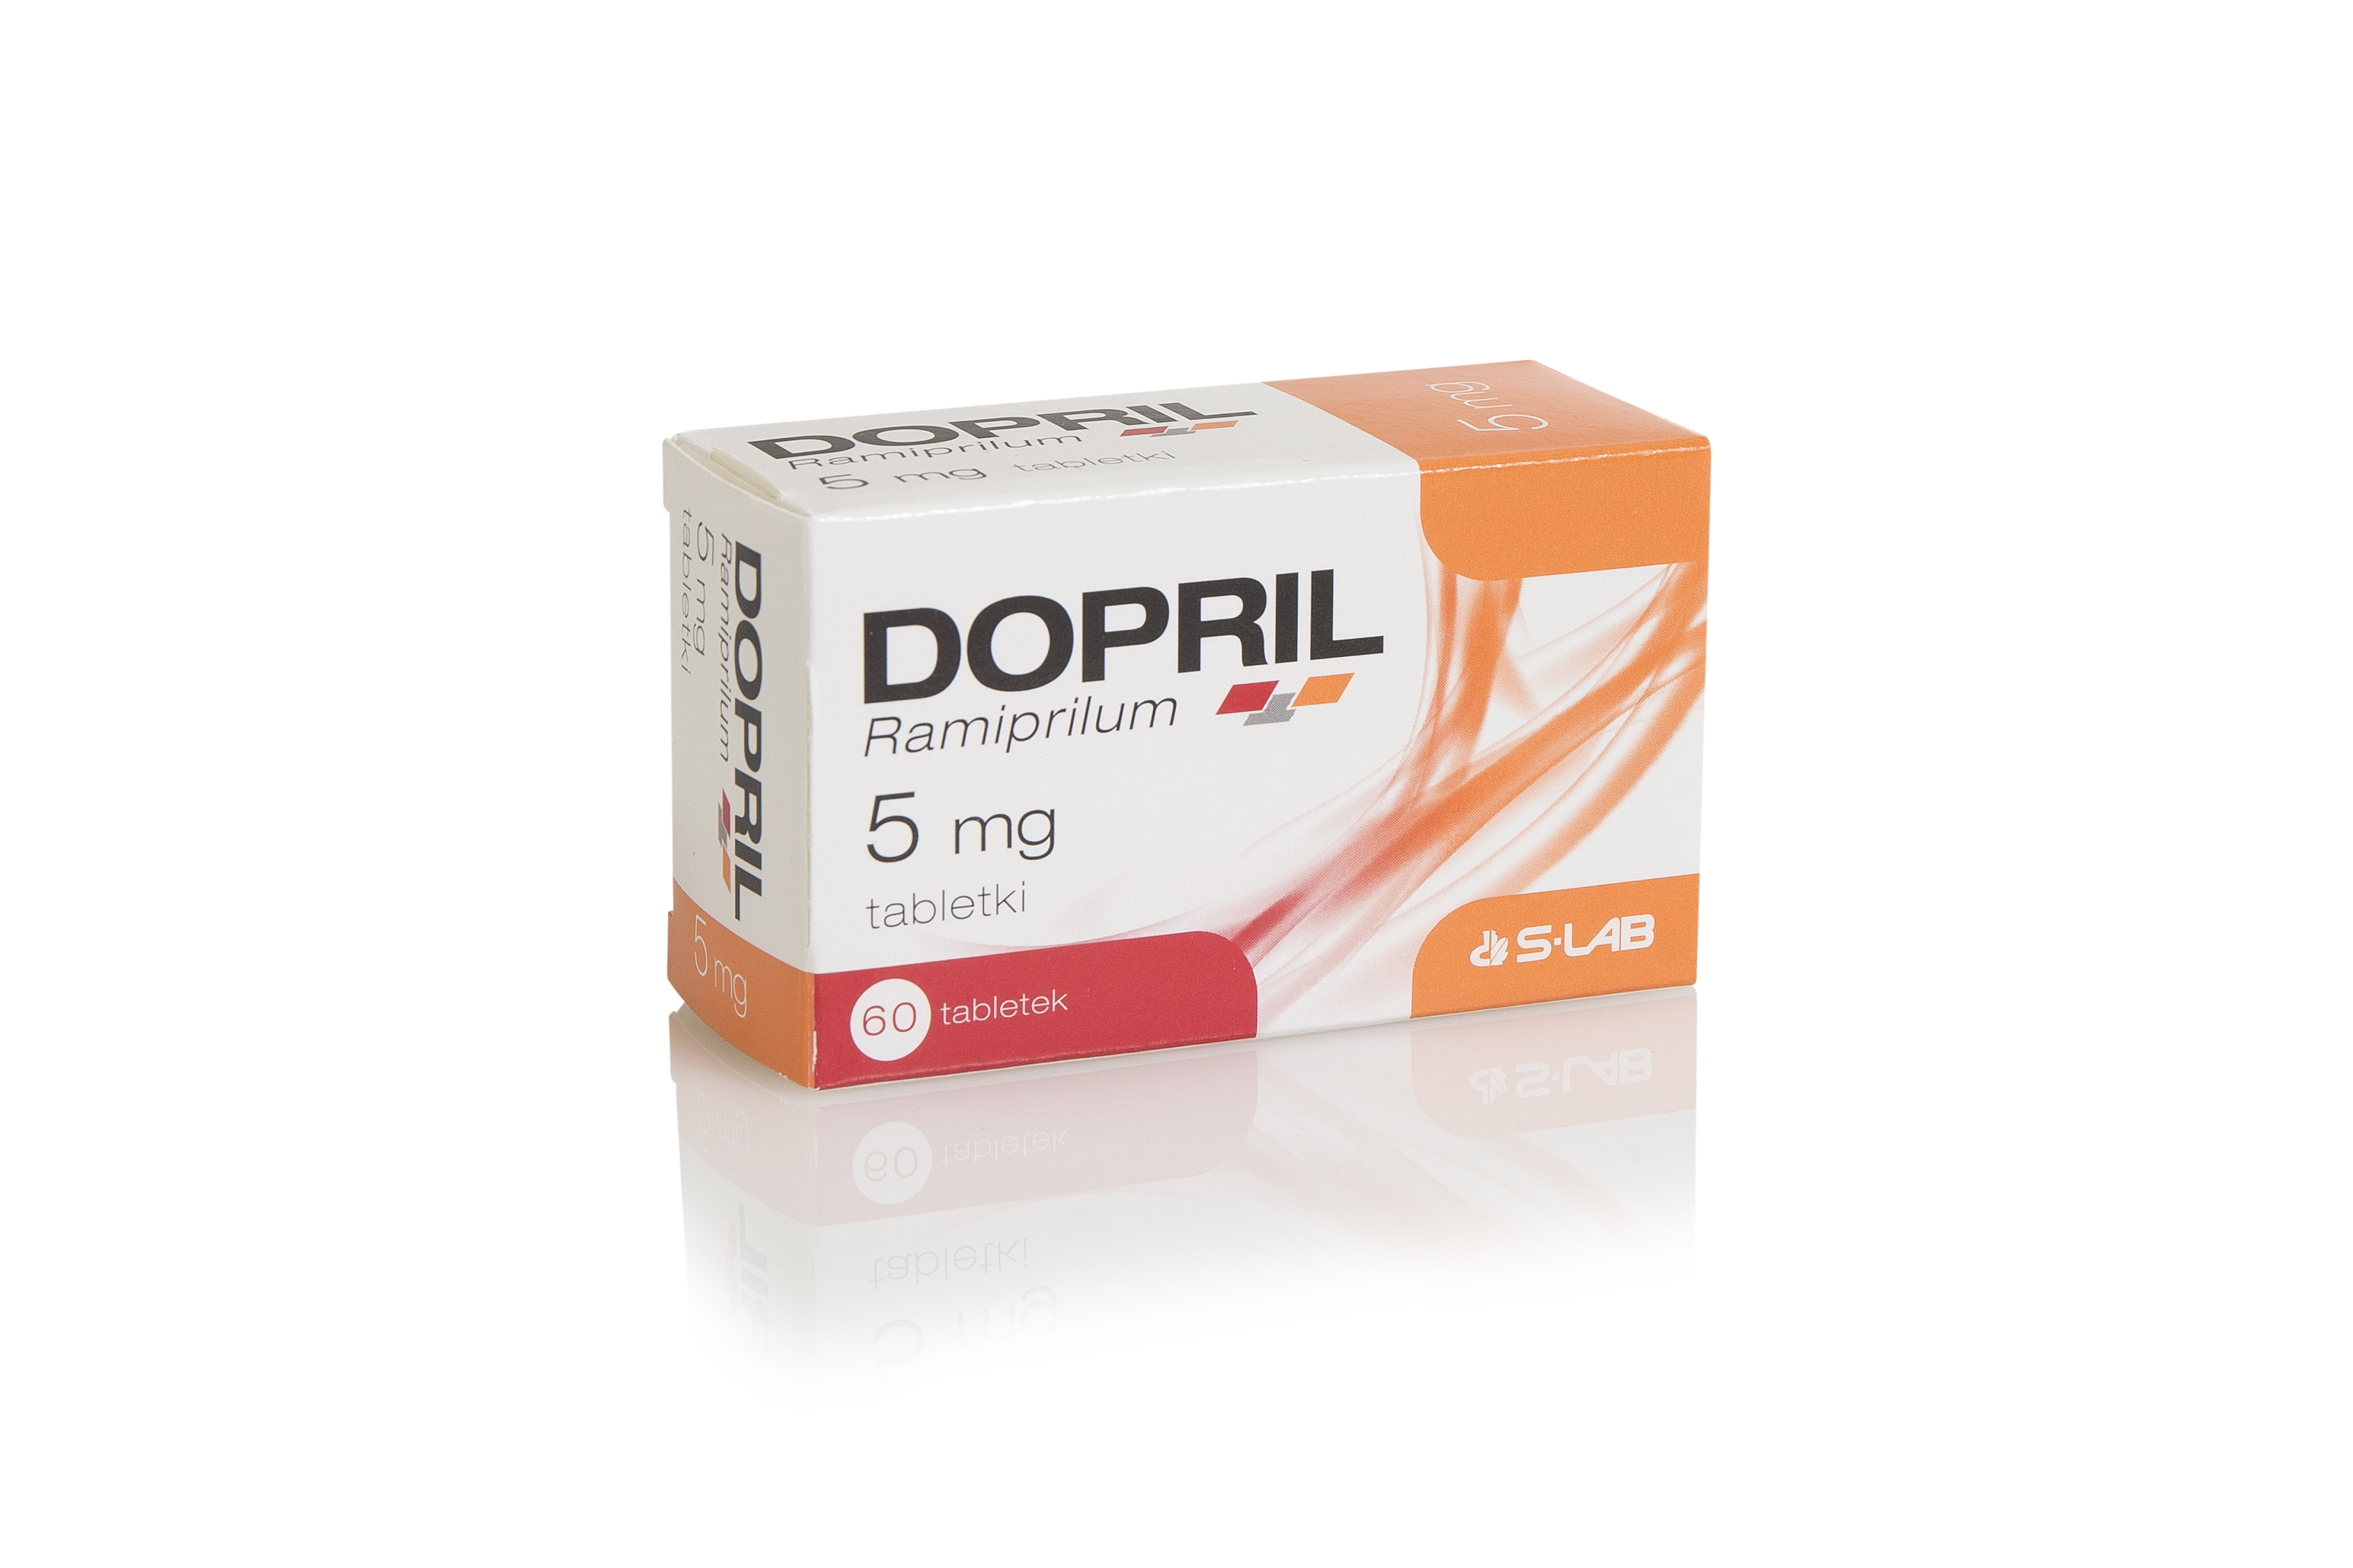 Dopril 5mg